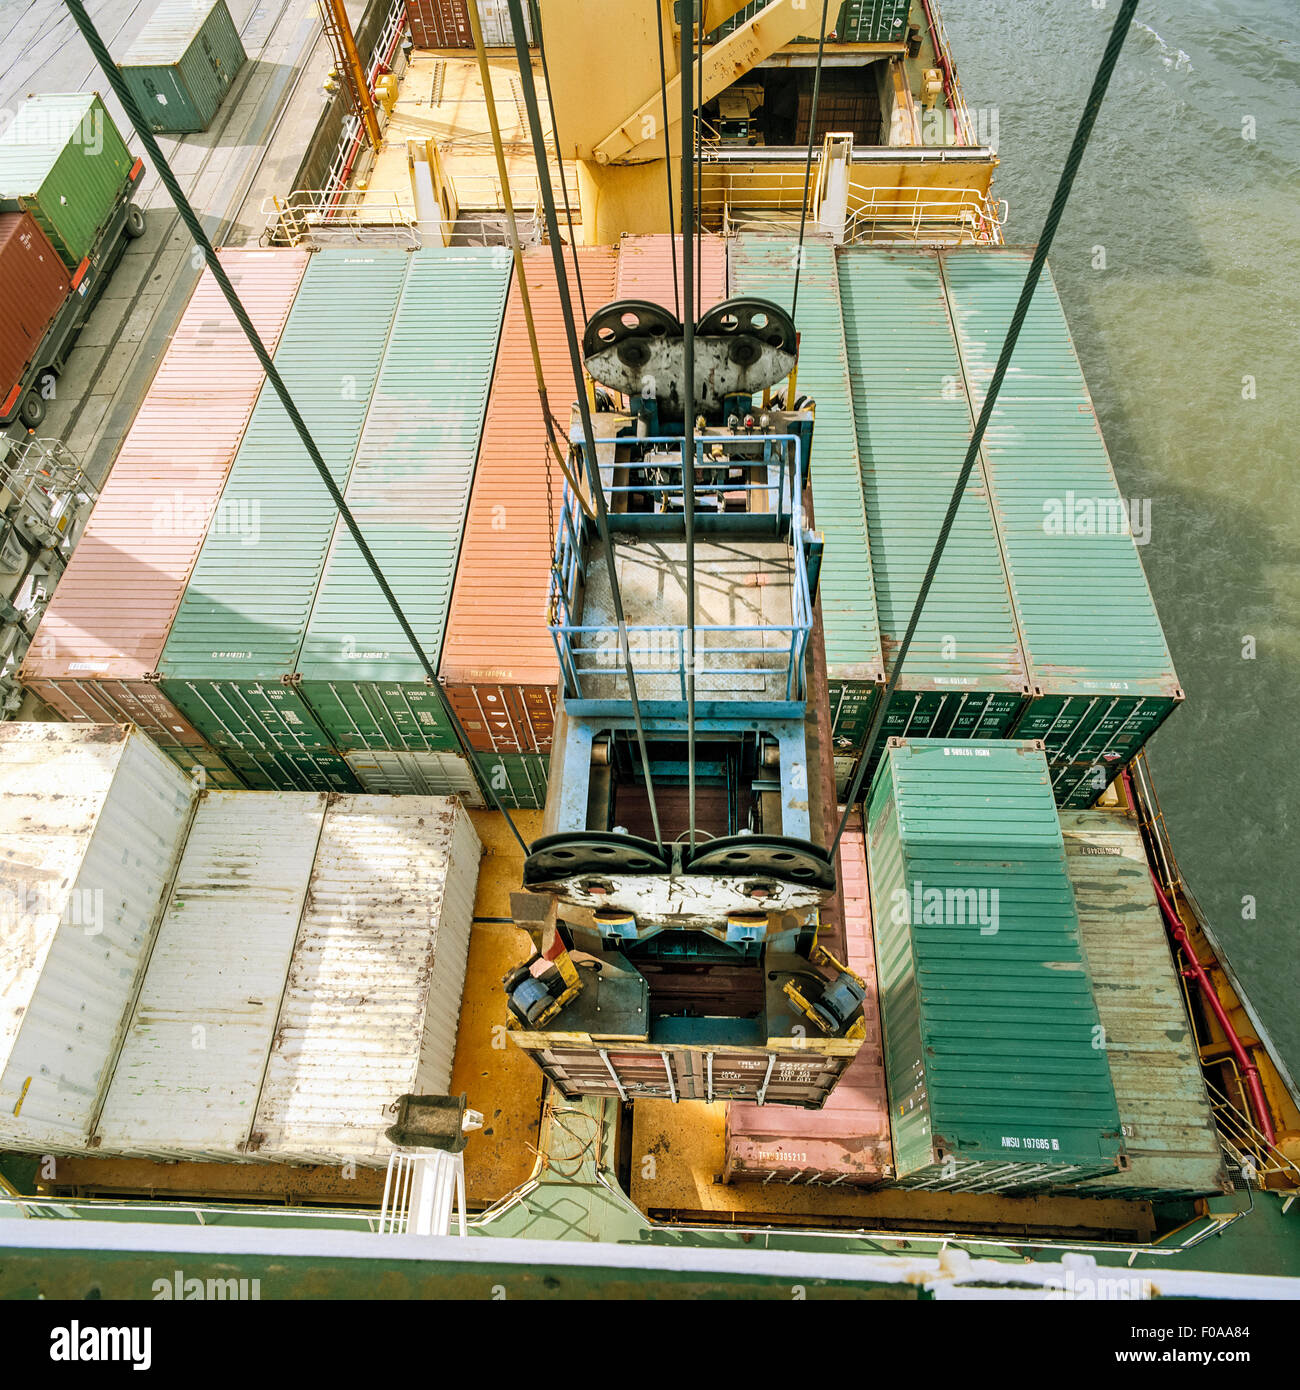 Shipping container being lowered by crane onto ship in port, high angle view - Stock Image